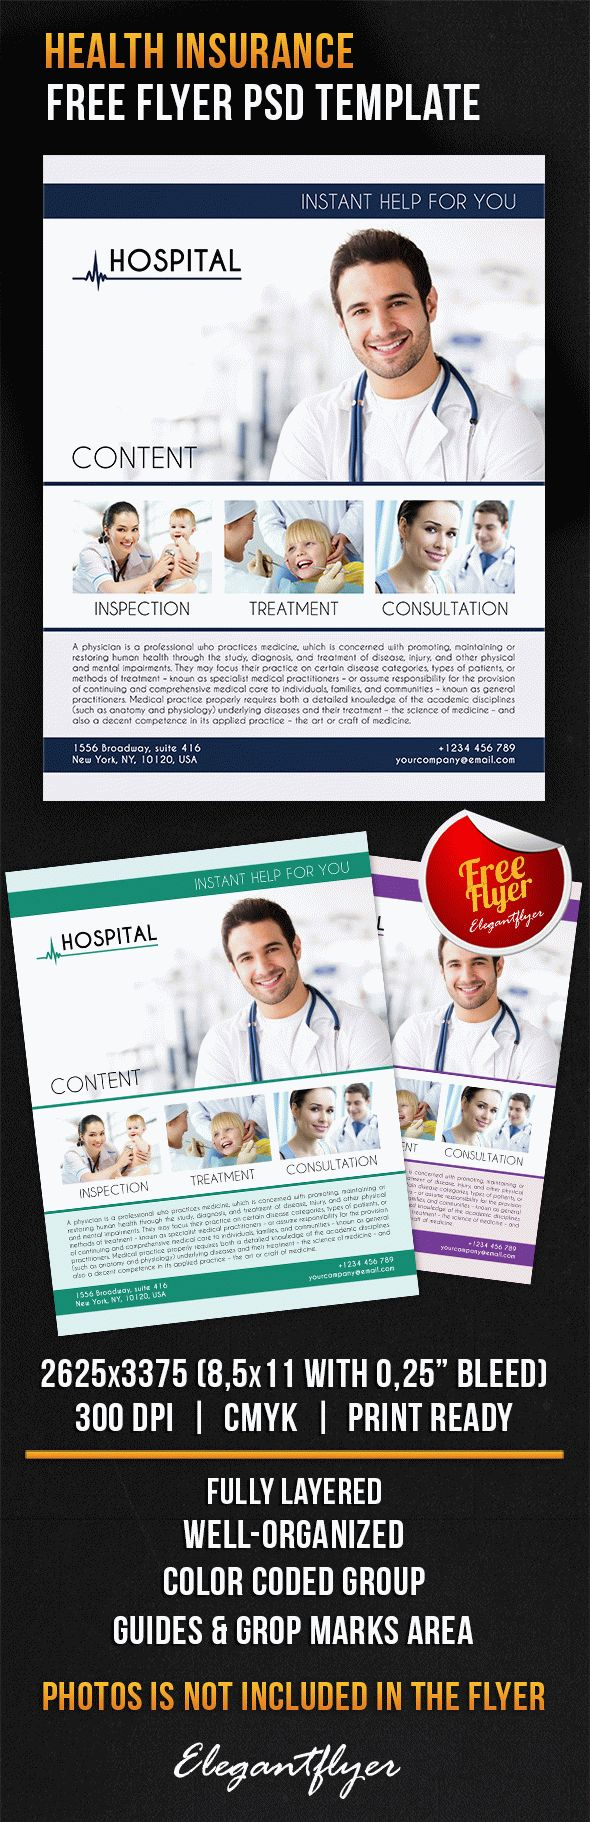 Health Insurance – Free Flyer PSD Template